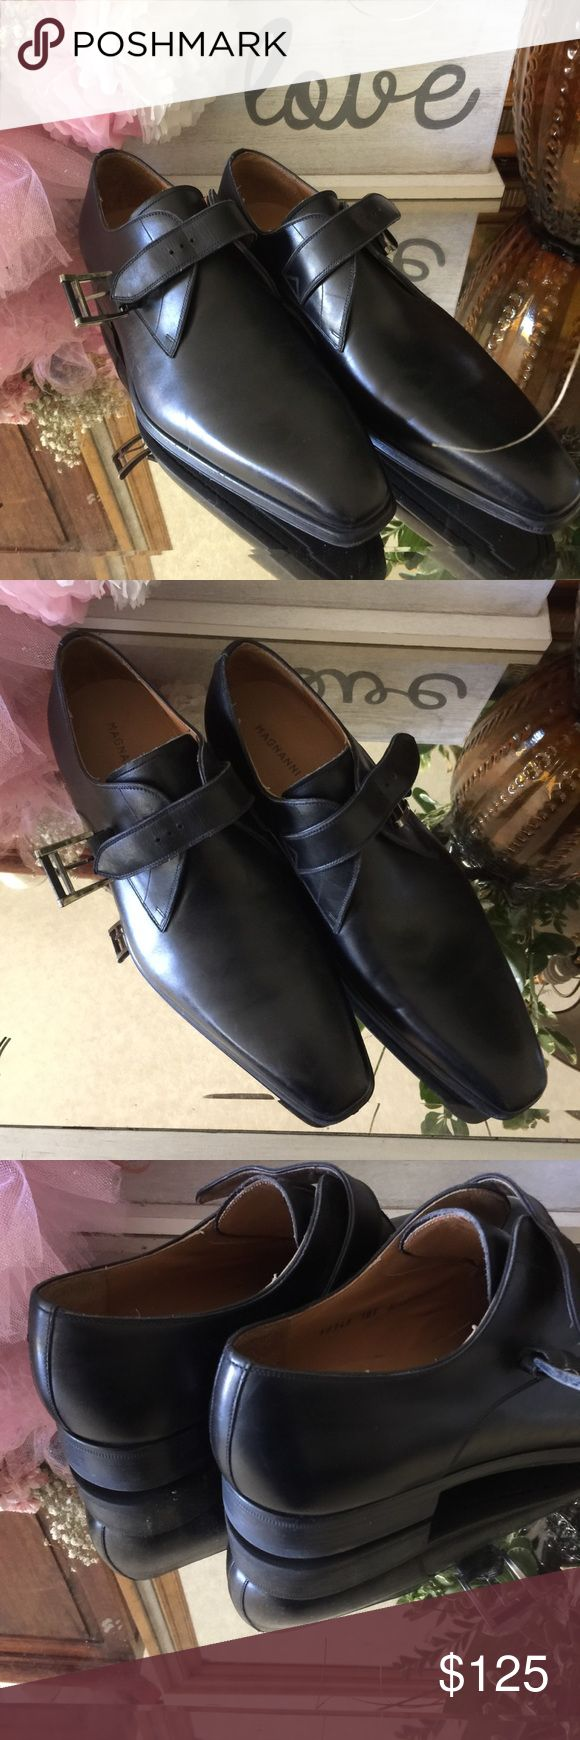 Soft leather men's shoes Black Italian  soft leather with buckle strap.  Point...